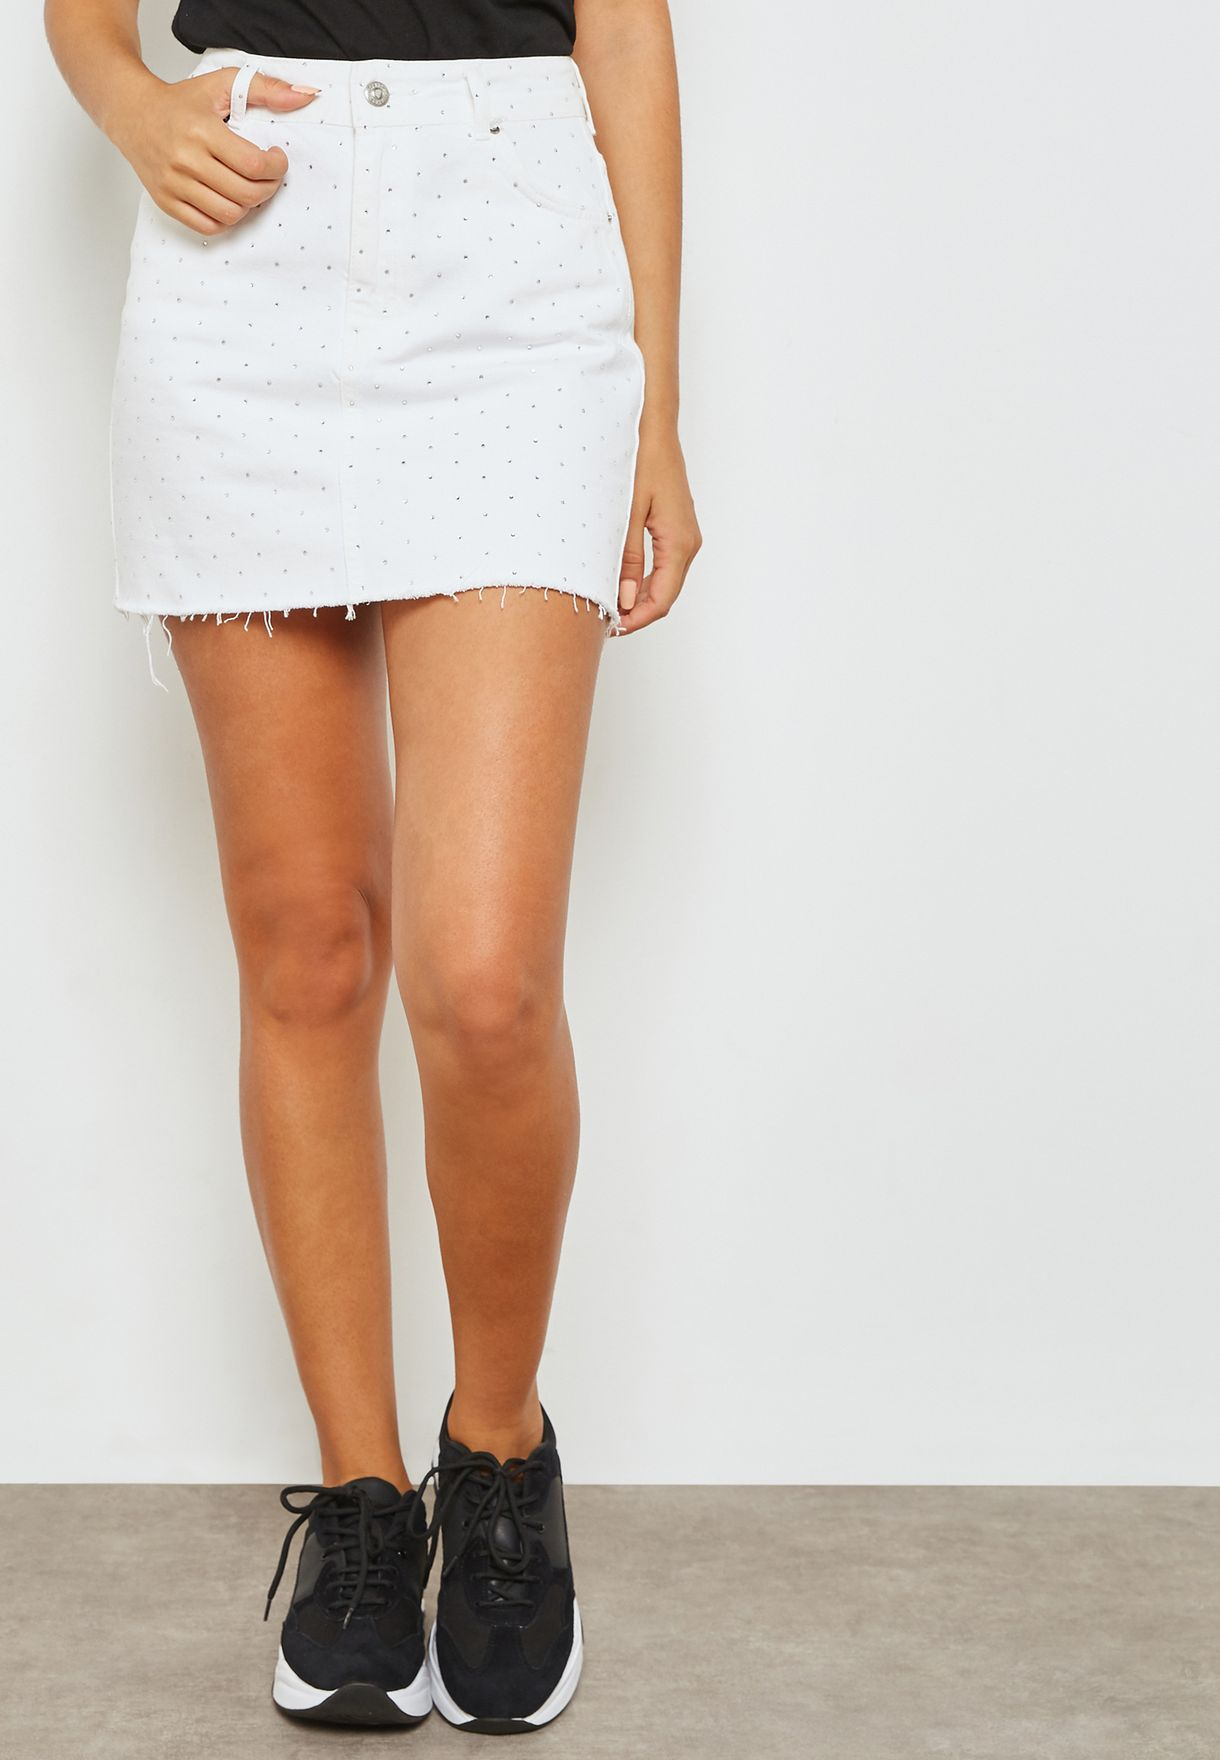 b7edd5d2a7 Shop Topshop white MOTO Denim Mini Skirt 05R49NWHT for Women in UAE ...